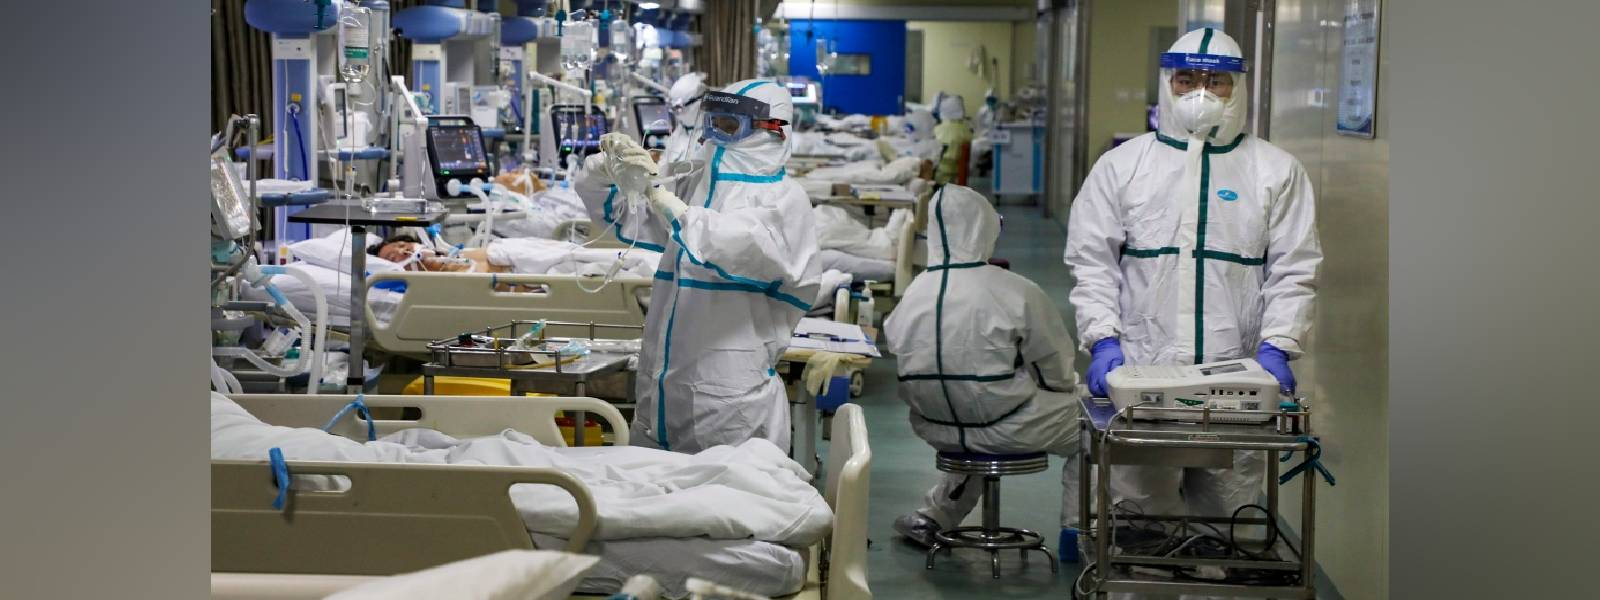 COVID-19: Six Hospitals to be established for treatment